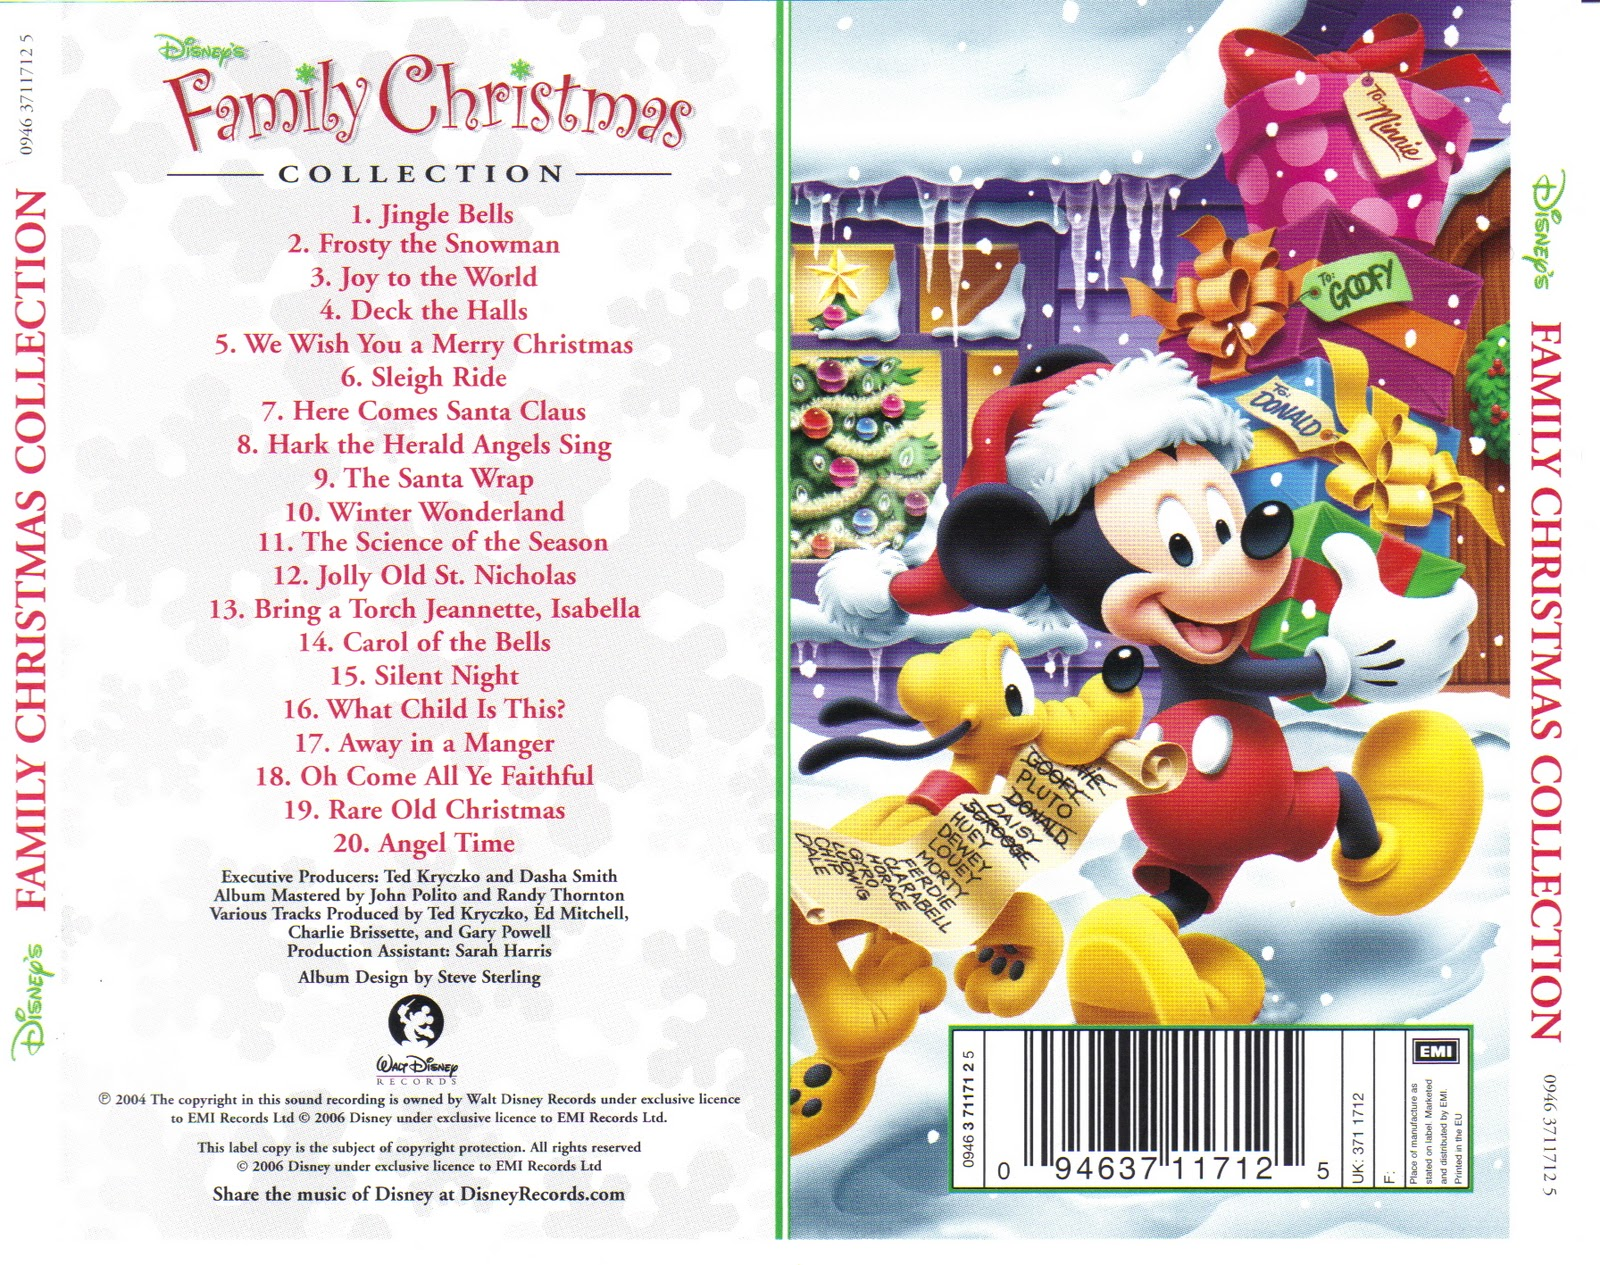 disneys family christmas collection free download rapidshare - Download Christmas Songs